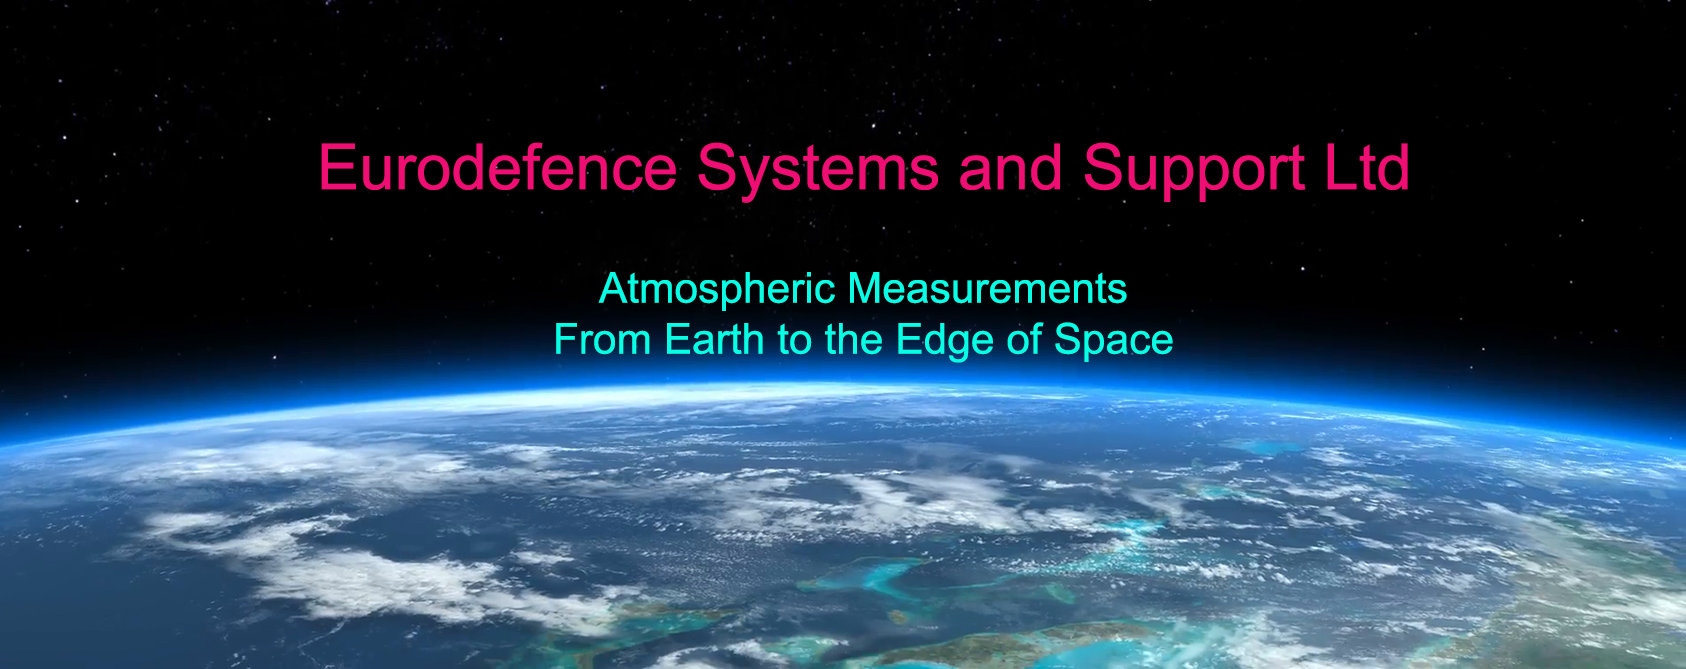 Eurodefence Systems : Environmental Sensing Technologies Systems and Training